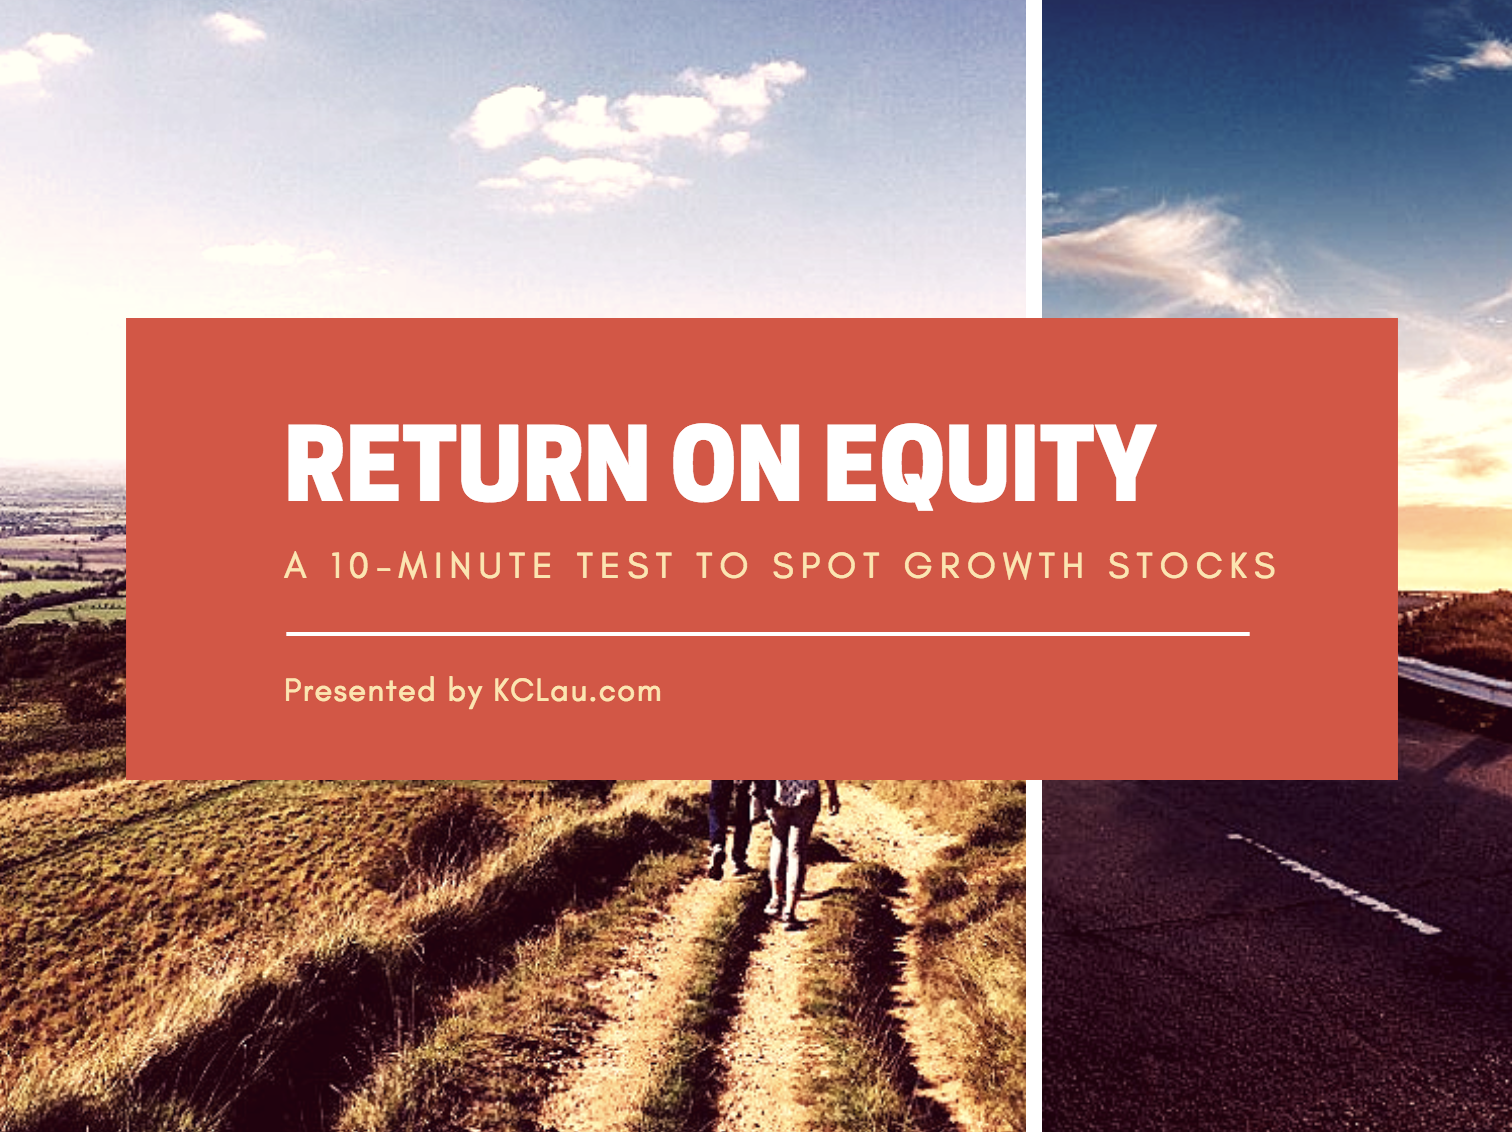 Spot Growth Stocks in 10 minutes with the Power of 'Return on Equity'